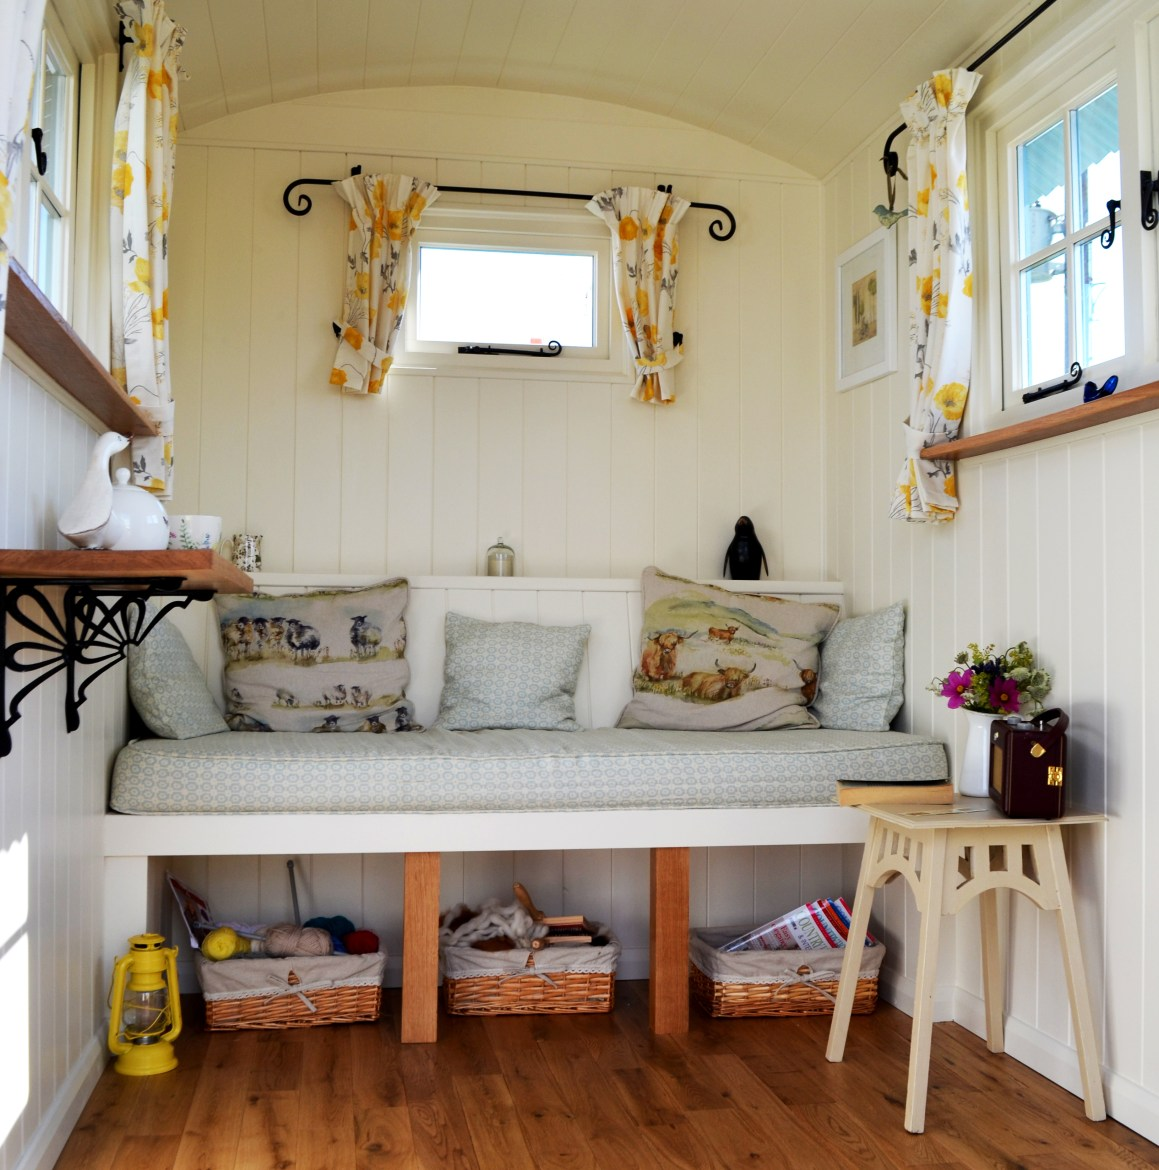 Shepherd hut summer house